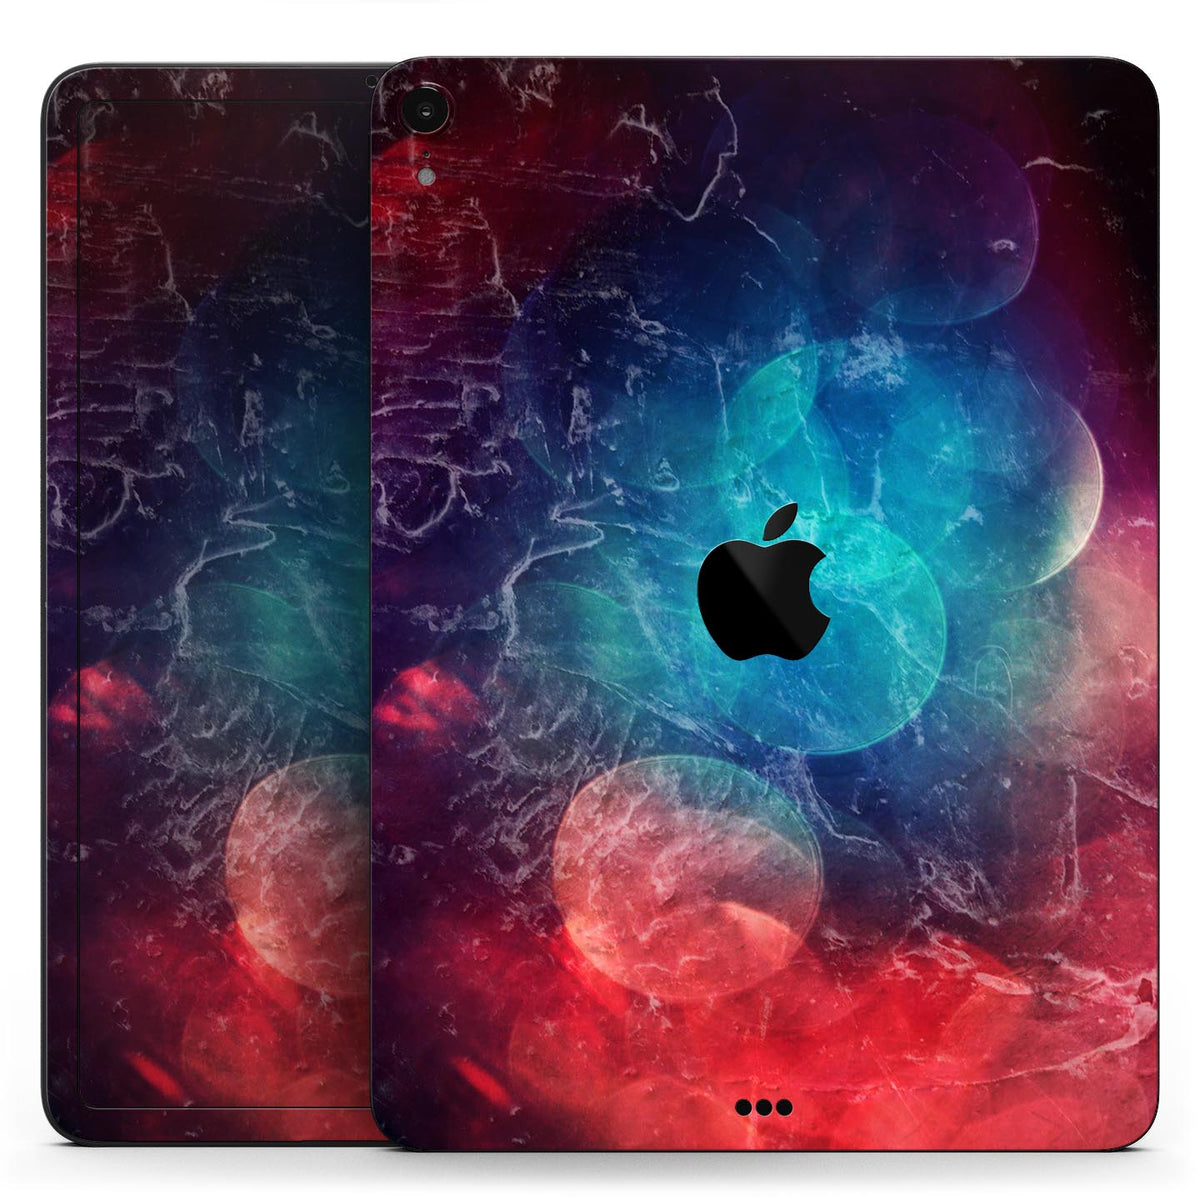 Abstract Fire Ice V7 Full Body Skin Decal For The Apple Ipad Pro 12 9 11 10 5 9 7 Air Or Mini All Models Available